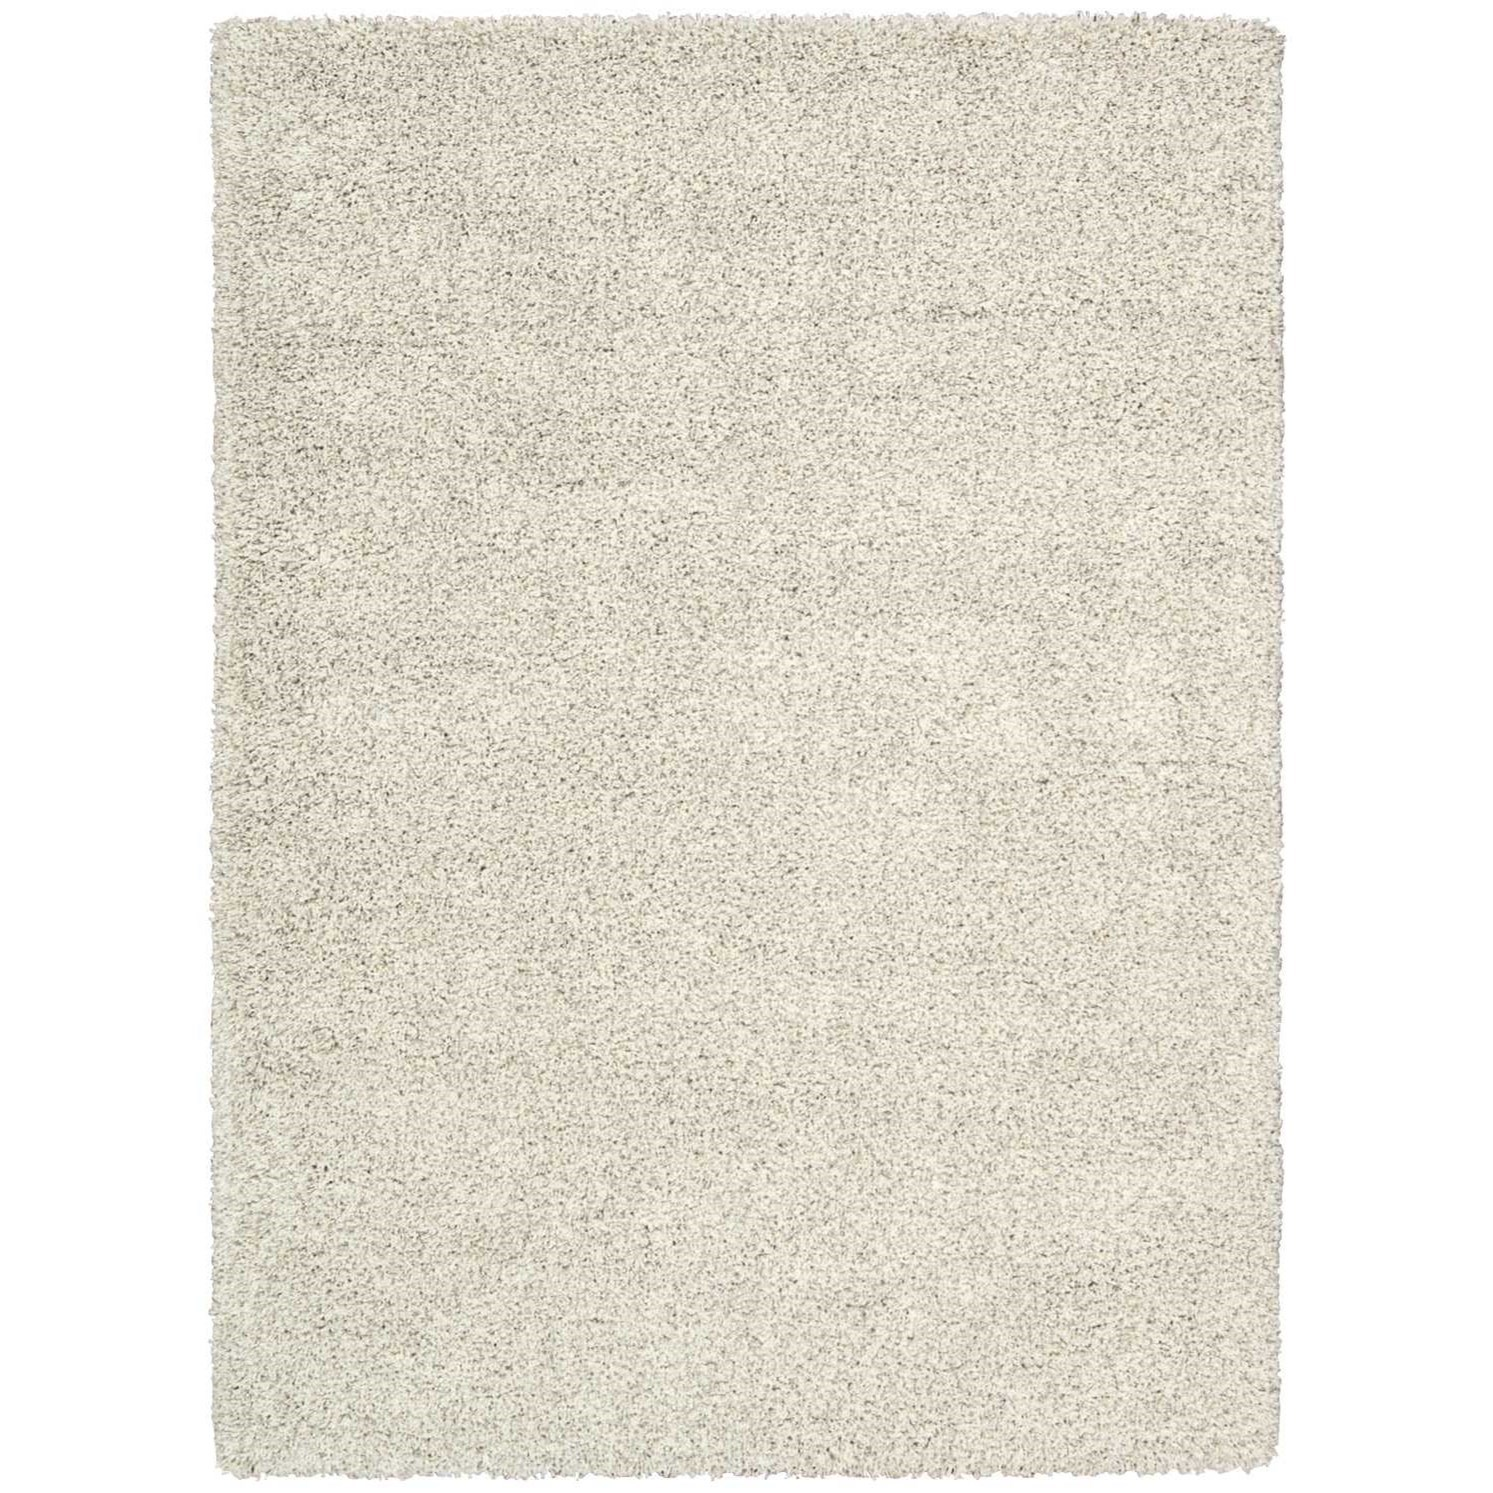 "Amore 7'10"" x 10'10"" Bone Rectangle Rug by Nourison at Sprintz Furniture"